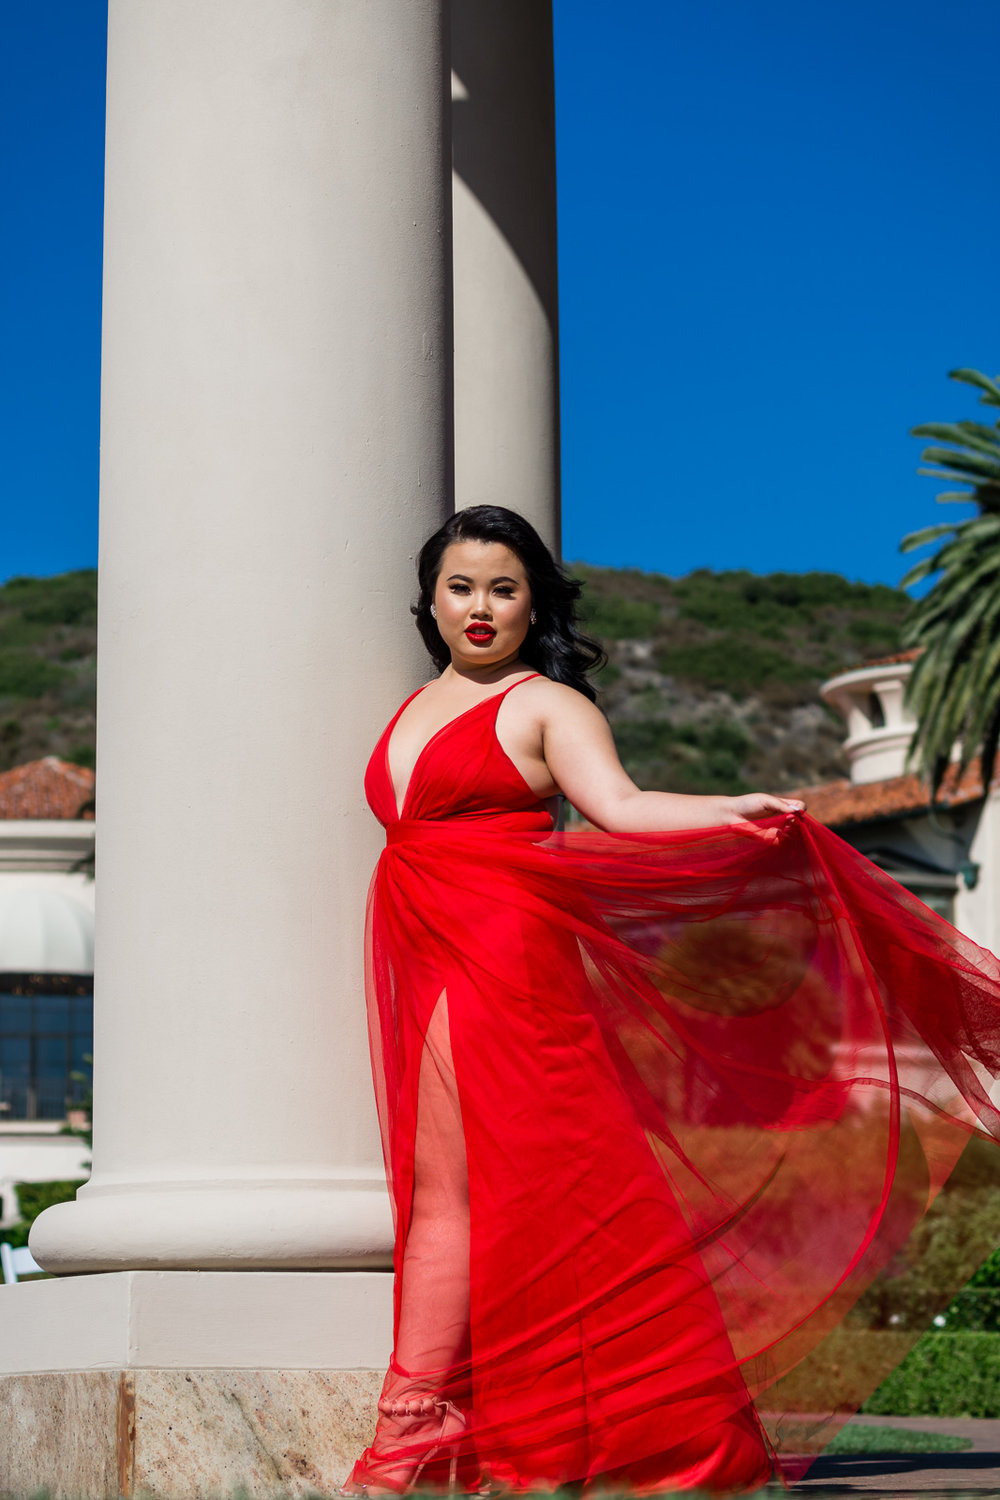 Kim Thai in fashion nova red dress photoshoot